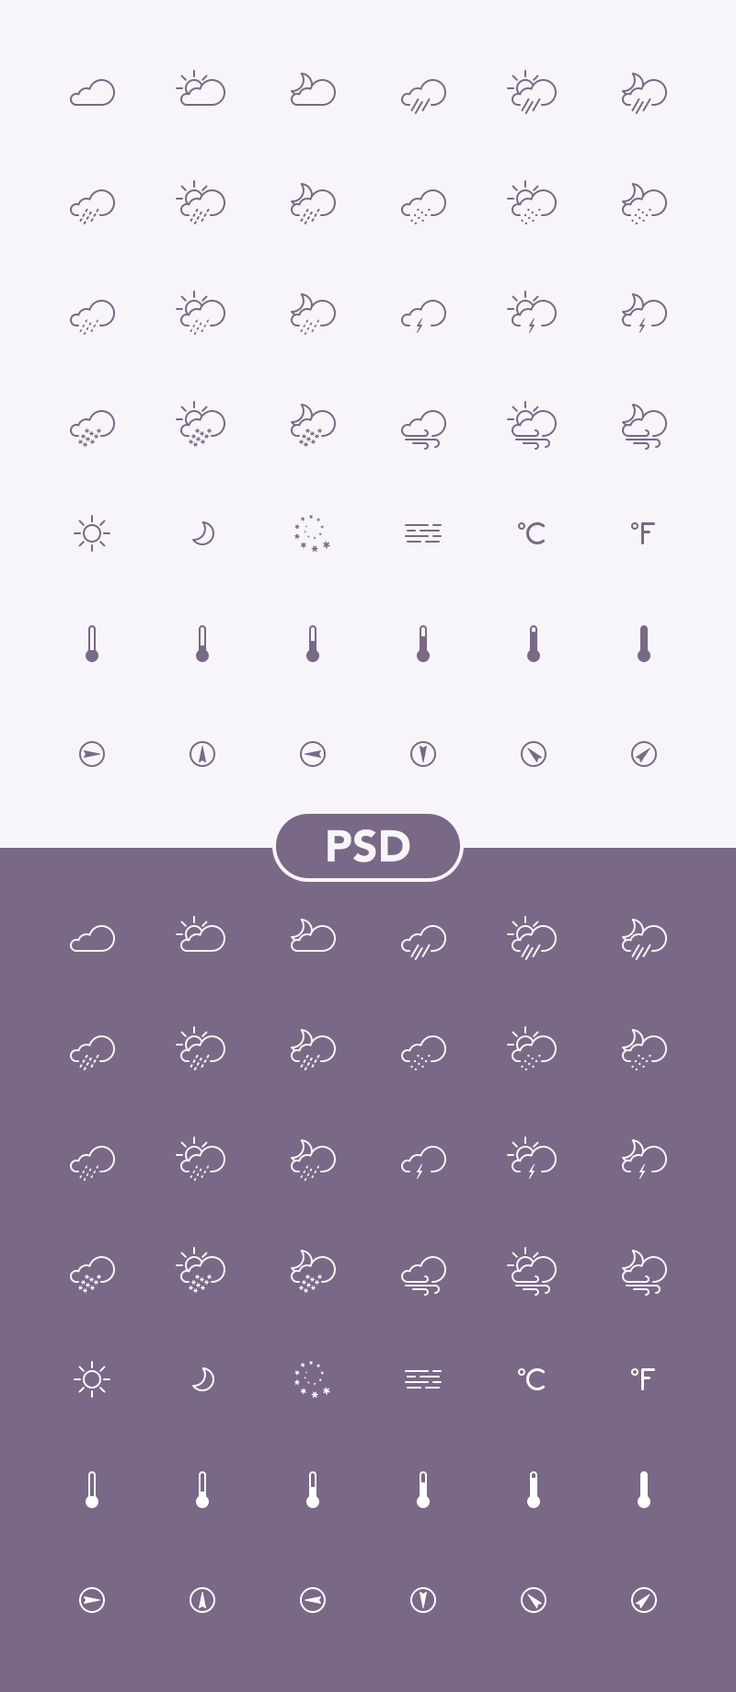 Free Weather Icons, #Free, #Graphic #Design, #Icon, #PSD, #Resource, #Weather